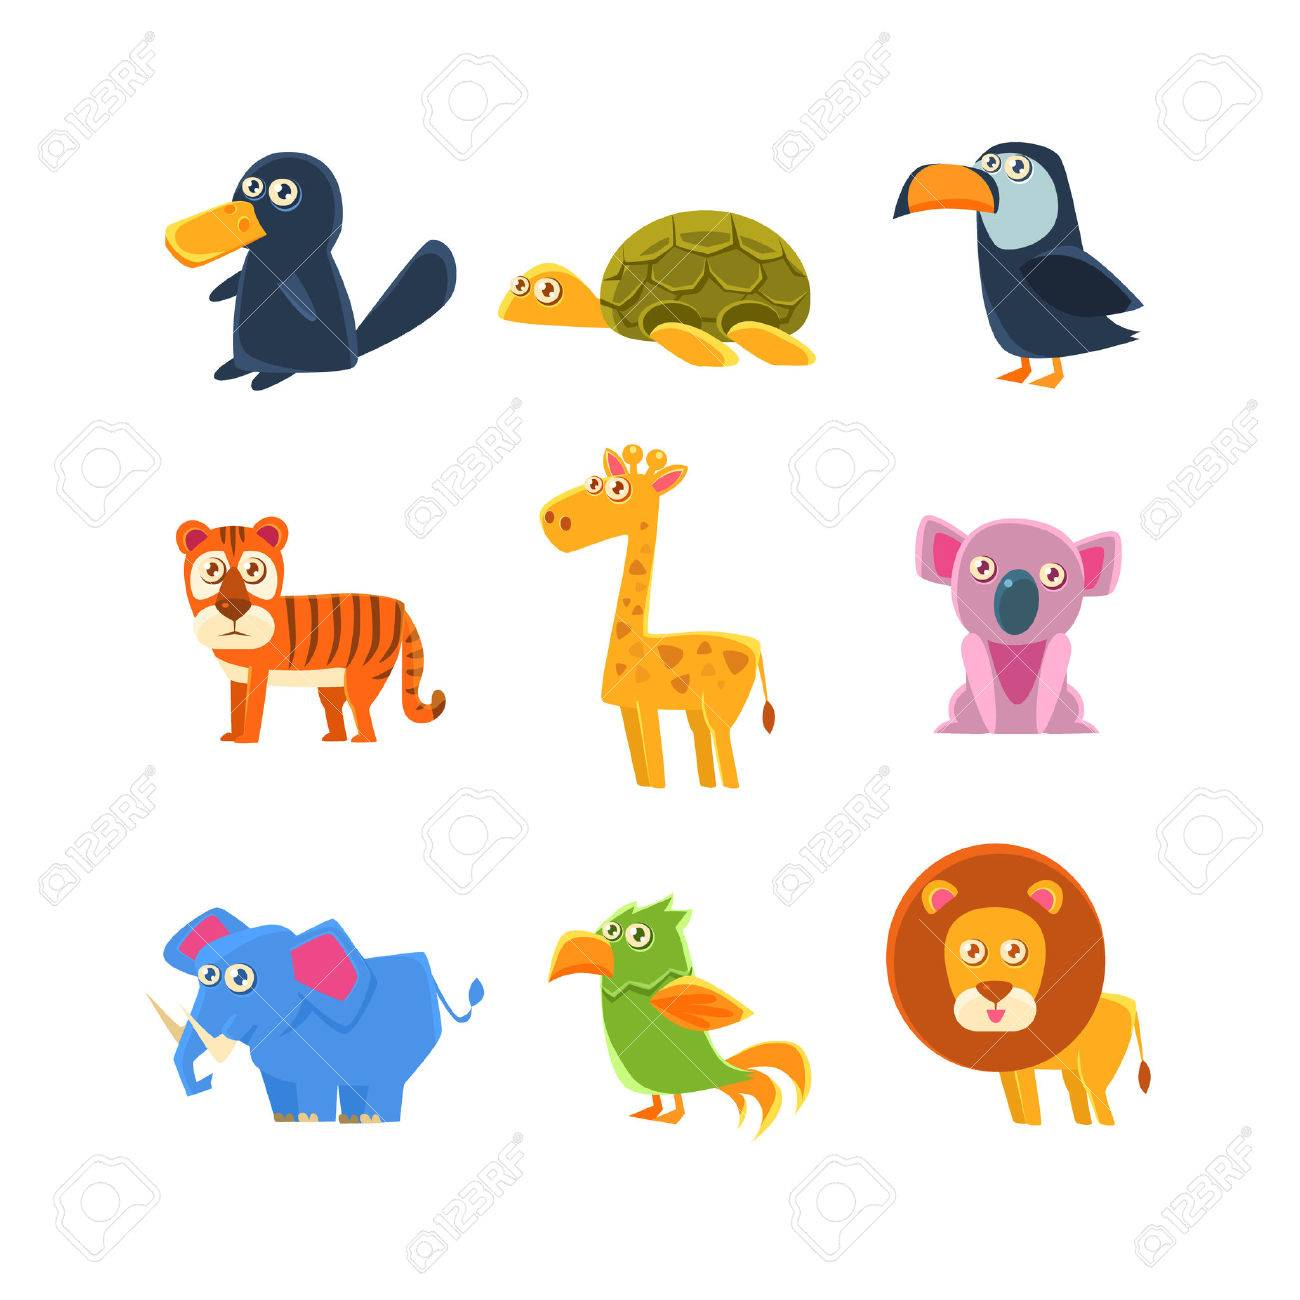 funny animals drawings  Exotic Animals Fauna Set Of Silly Childish Drawings Isolated ...